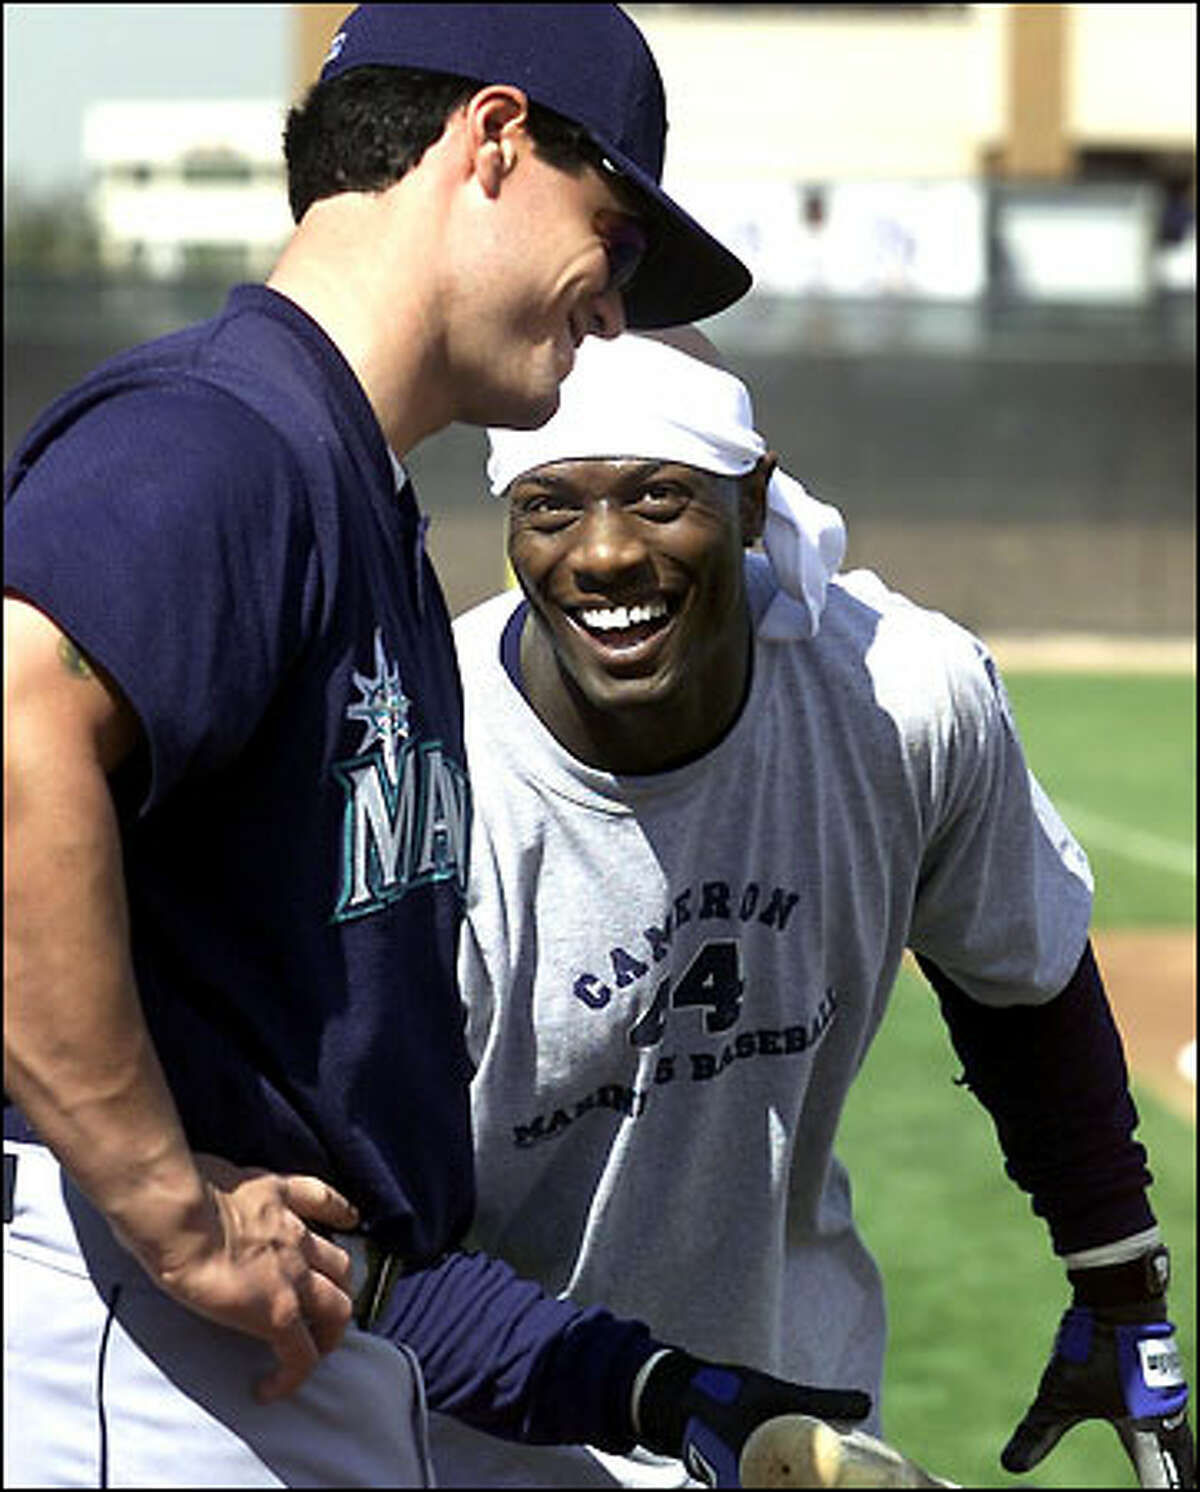 Mariners center fielder Mike Cameron jokes with new catcher Ben Davis during a break in batting practice at the team's spring training camp.